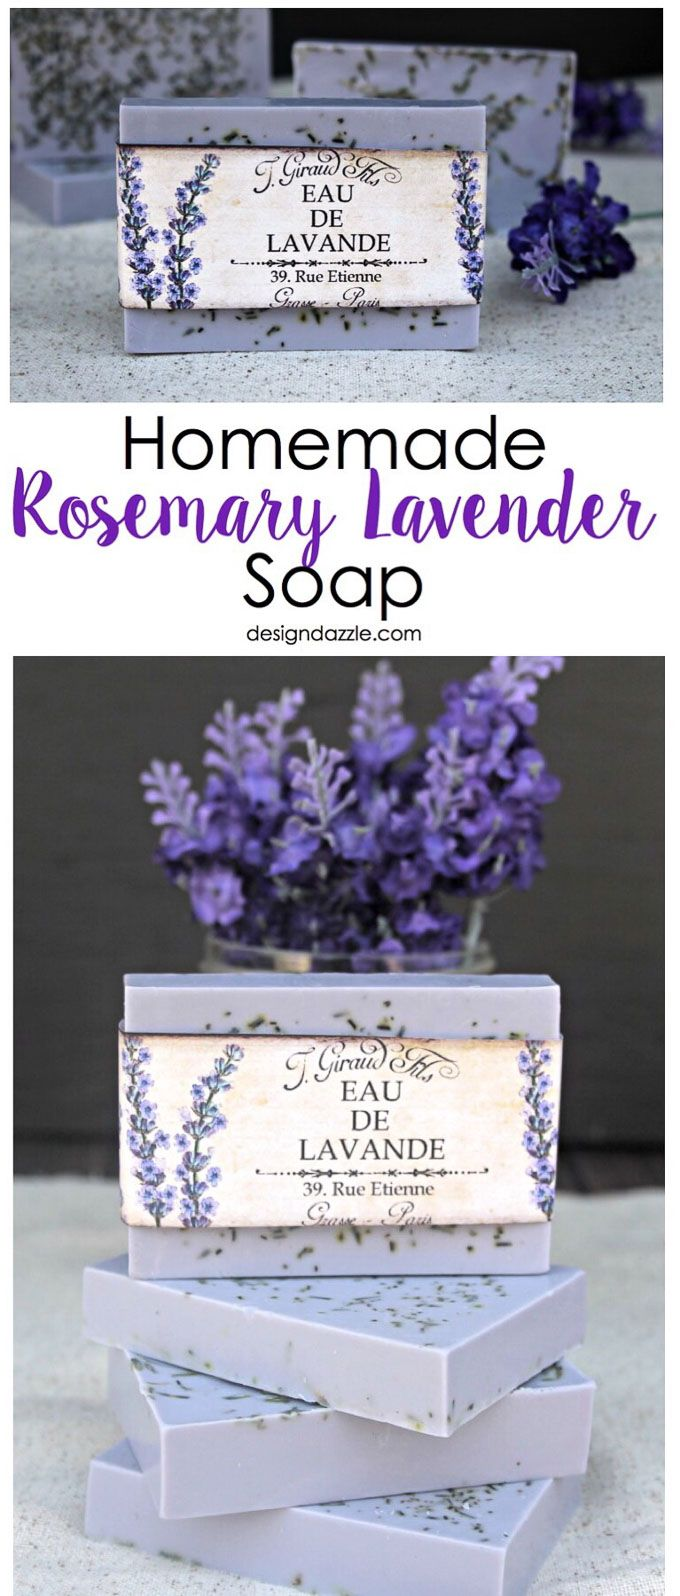 This Homemade Rosemary Lavender Soap recipe is surprisingly simple and turns out...